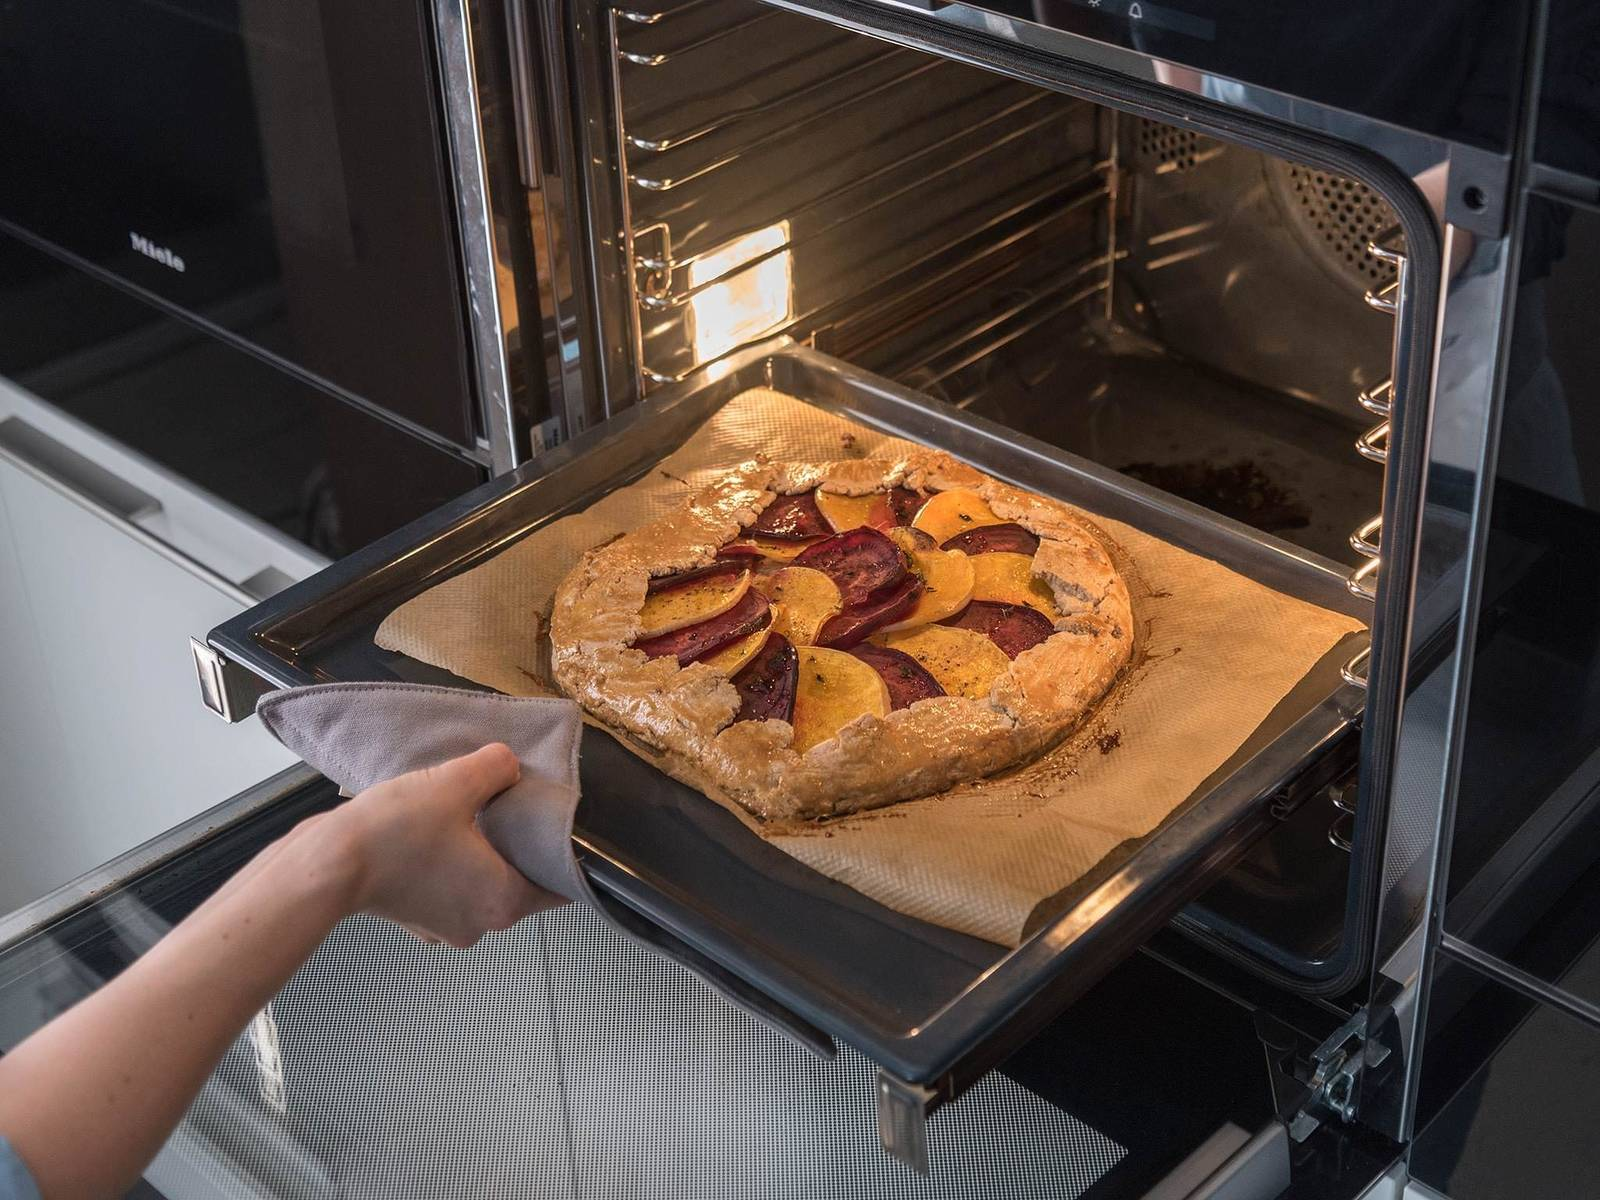 Brush dough with milk. Transfer galette to oven at 180°C/350°F for approx. 40 min., or until the dough is golden brown and the vegetables are cooked through. Remove from oven, let cool slightly,  then serve warm. Enjoy!